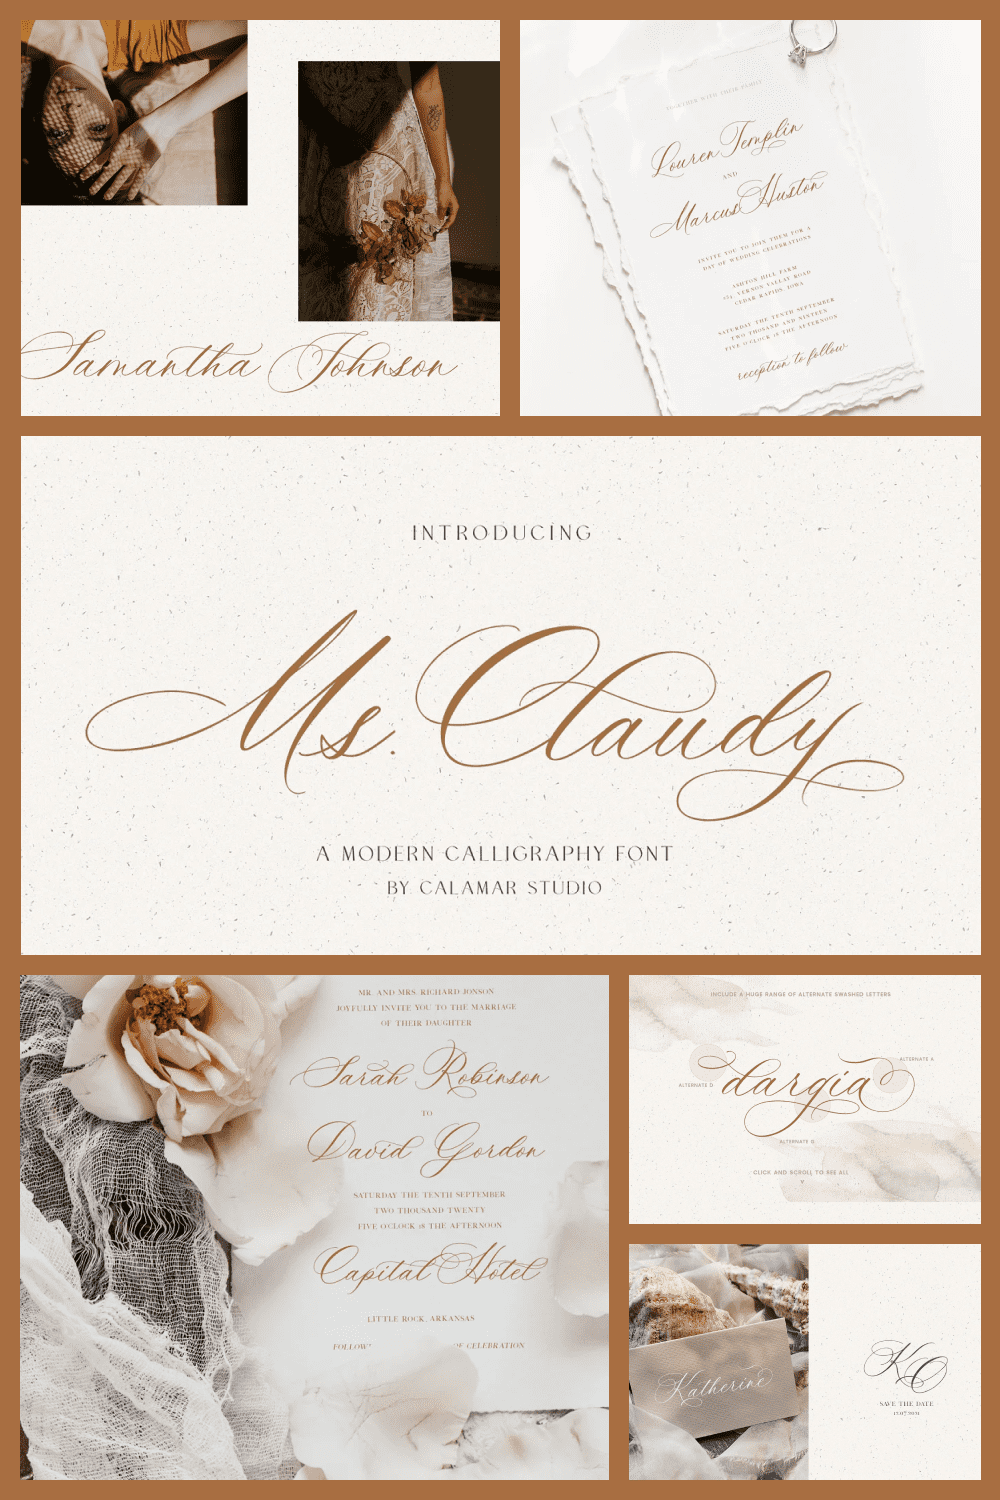 This font is ideal for wedding ceremonies. It is delicate and luxurious.